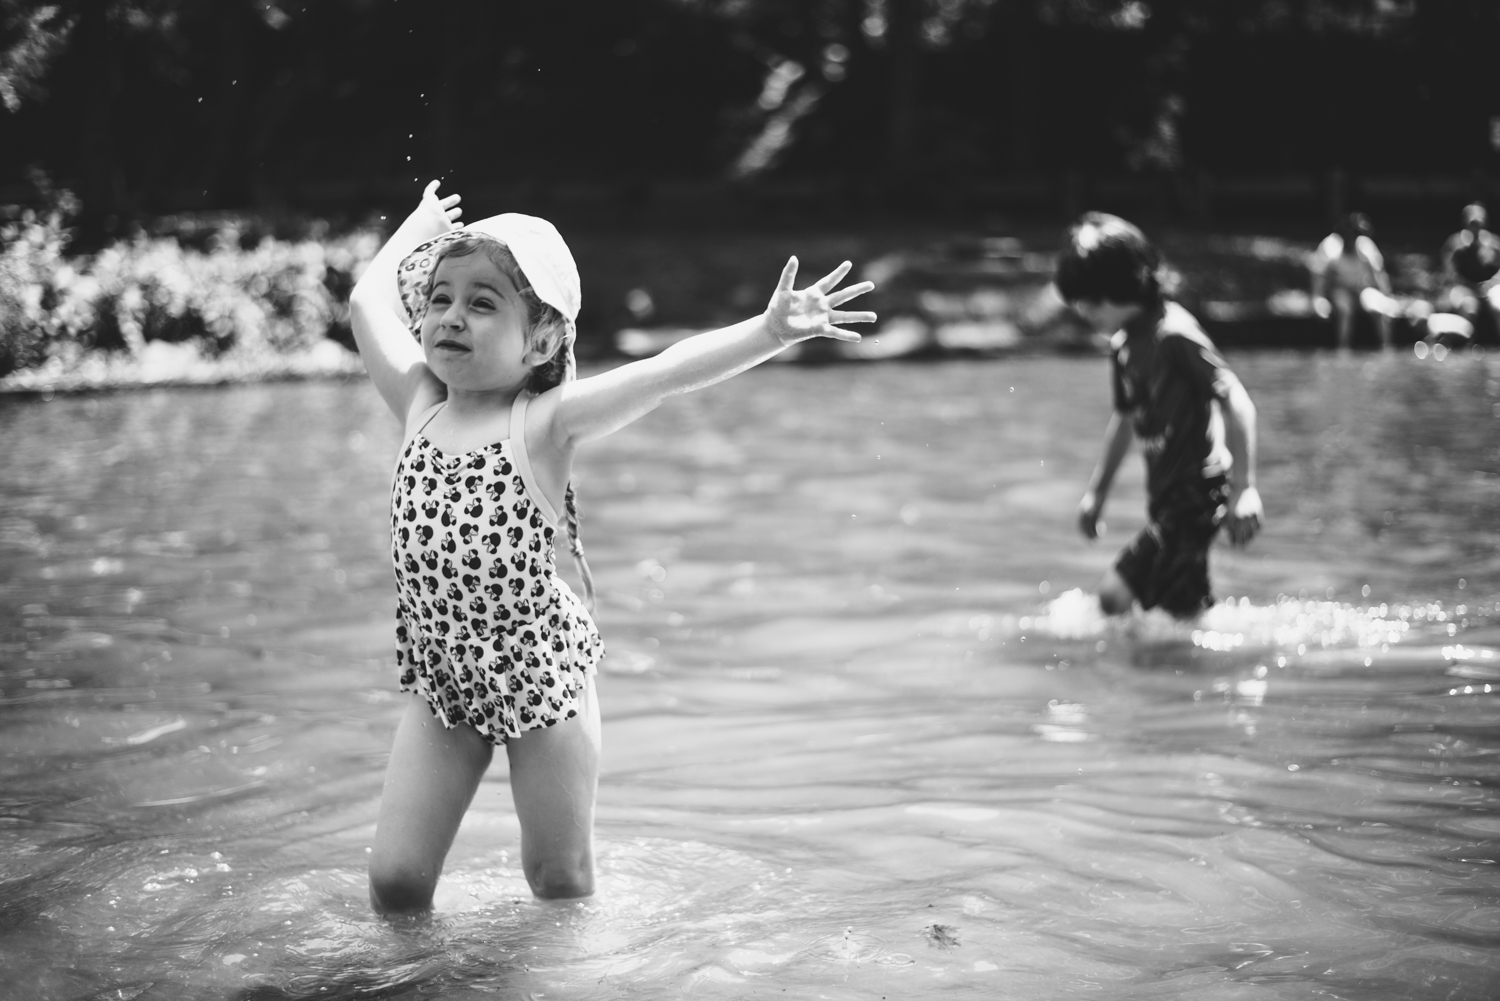 Lila at the swimming hole.